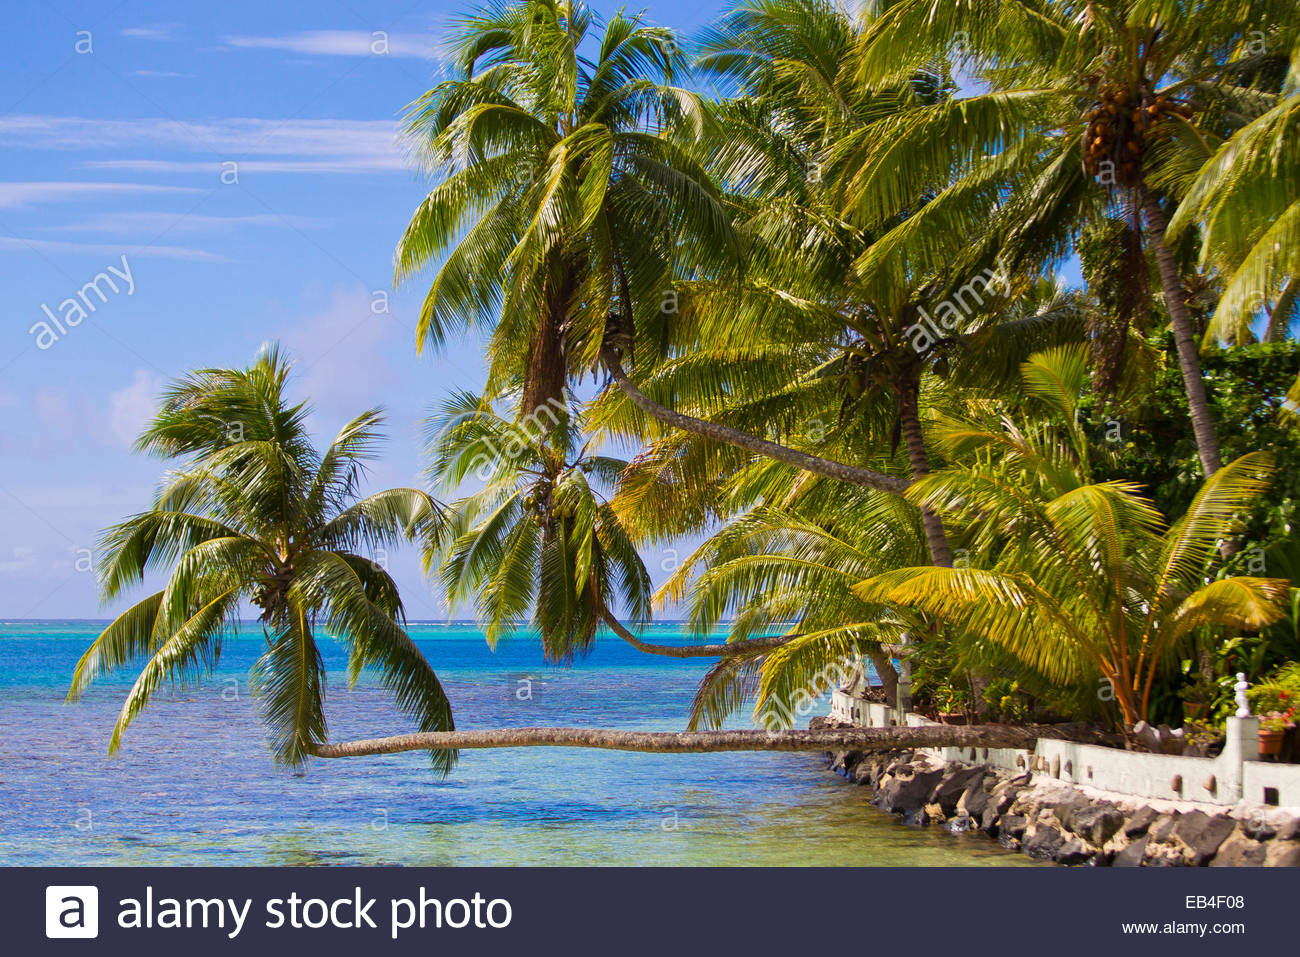 Horizontally-growing palm trees on the coast of the island of Moorea. - Stock Image